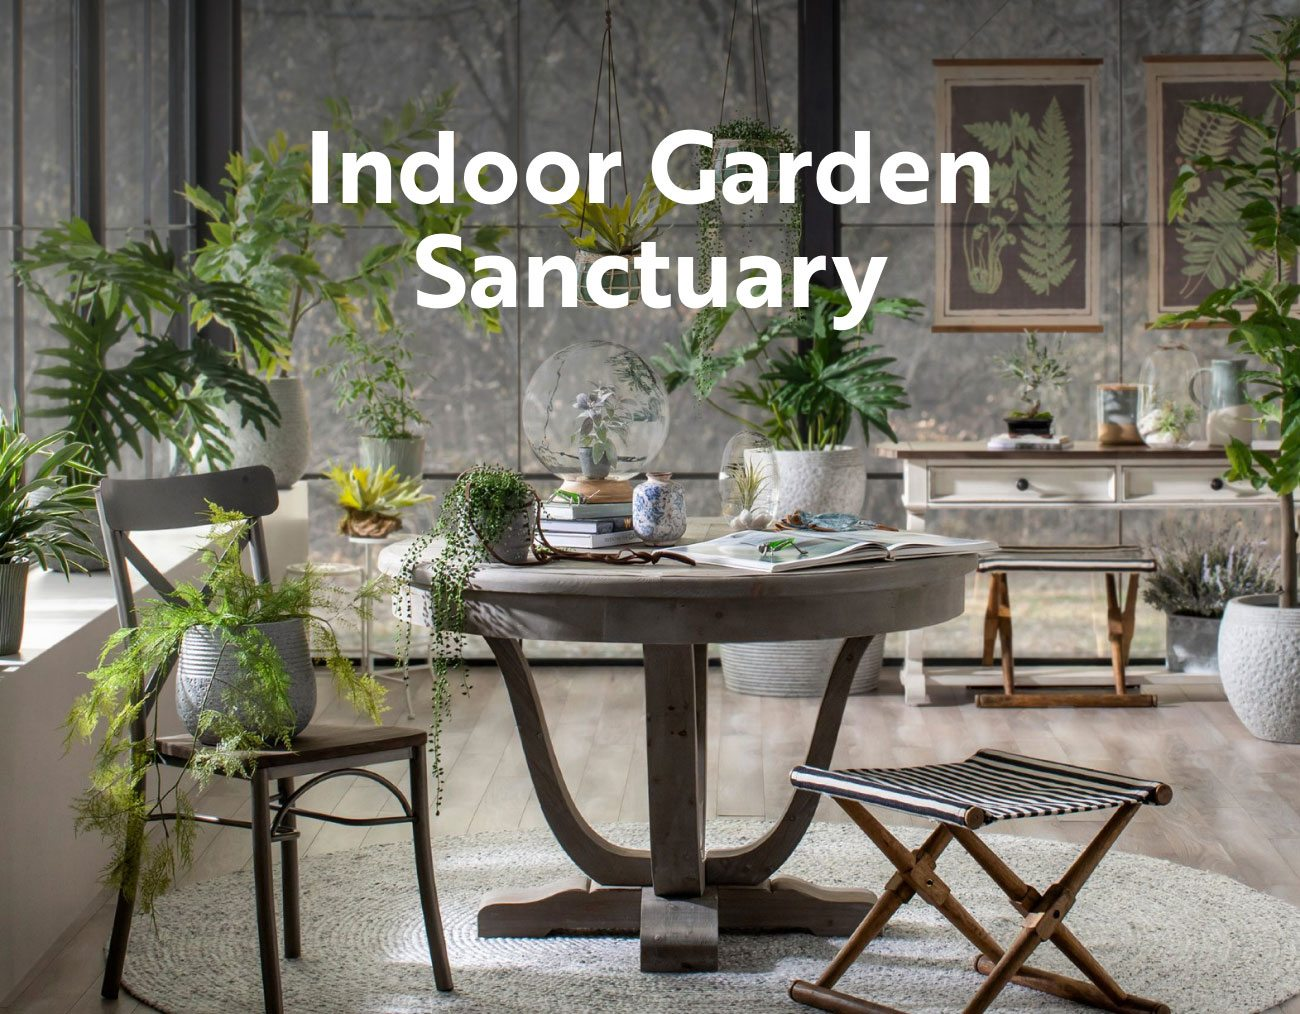 Indoor Garden Sanctuary